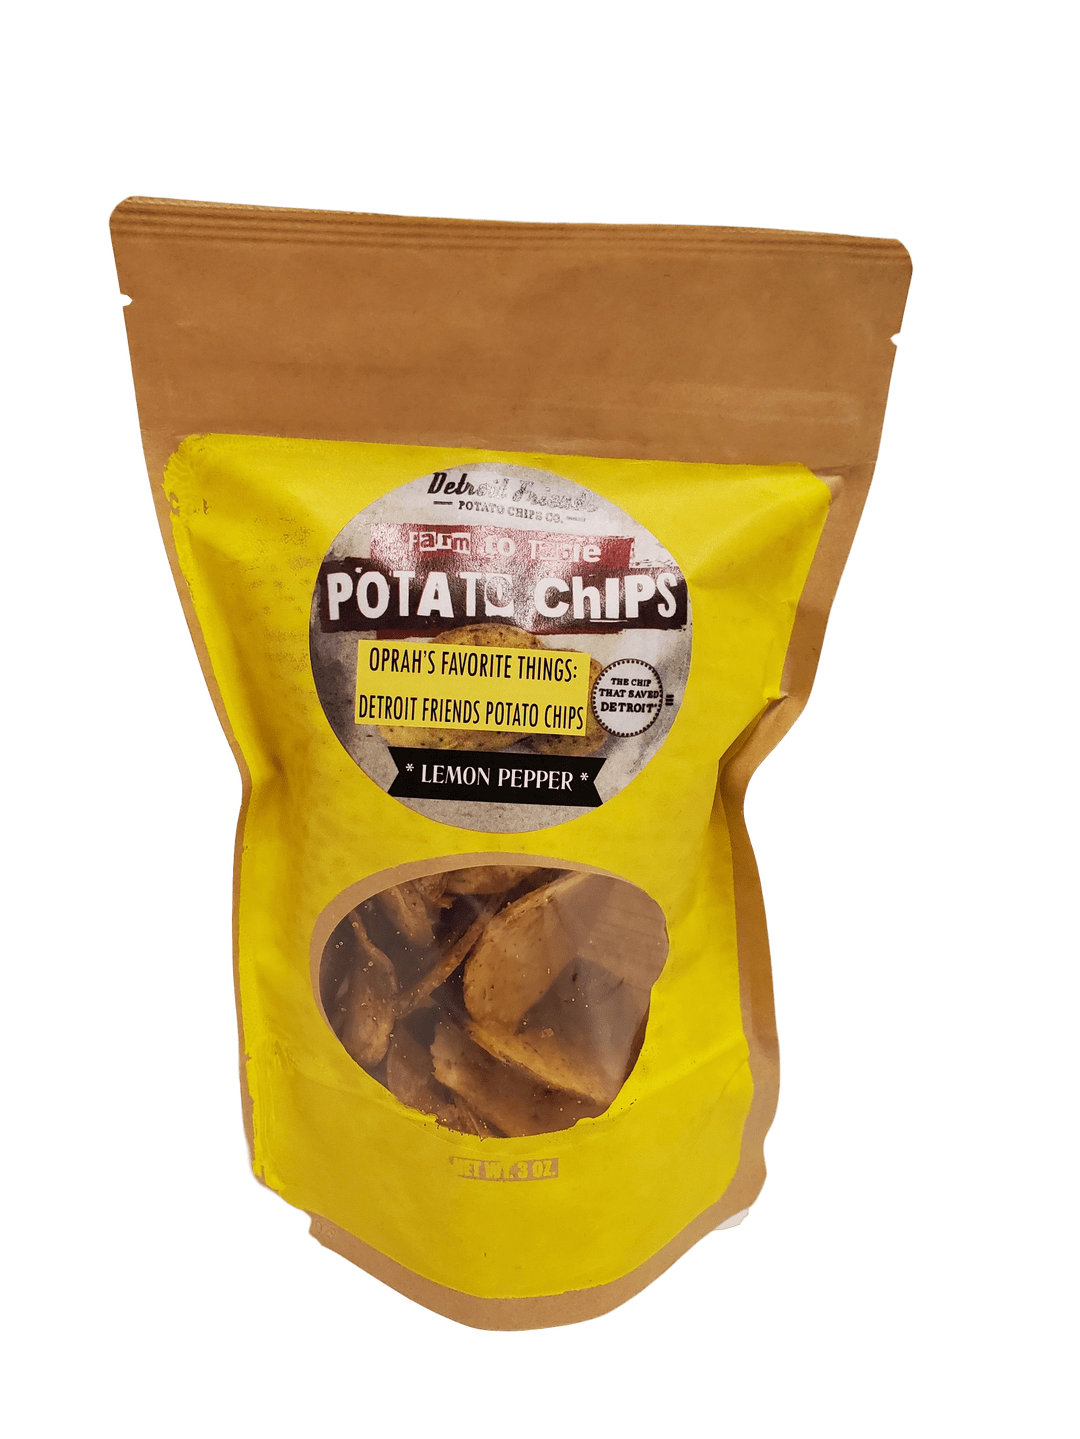 Detroit Friends Potato Chips - Lemon Pepper - Pure Detroit